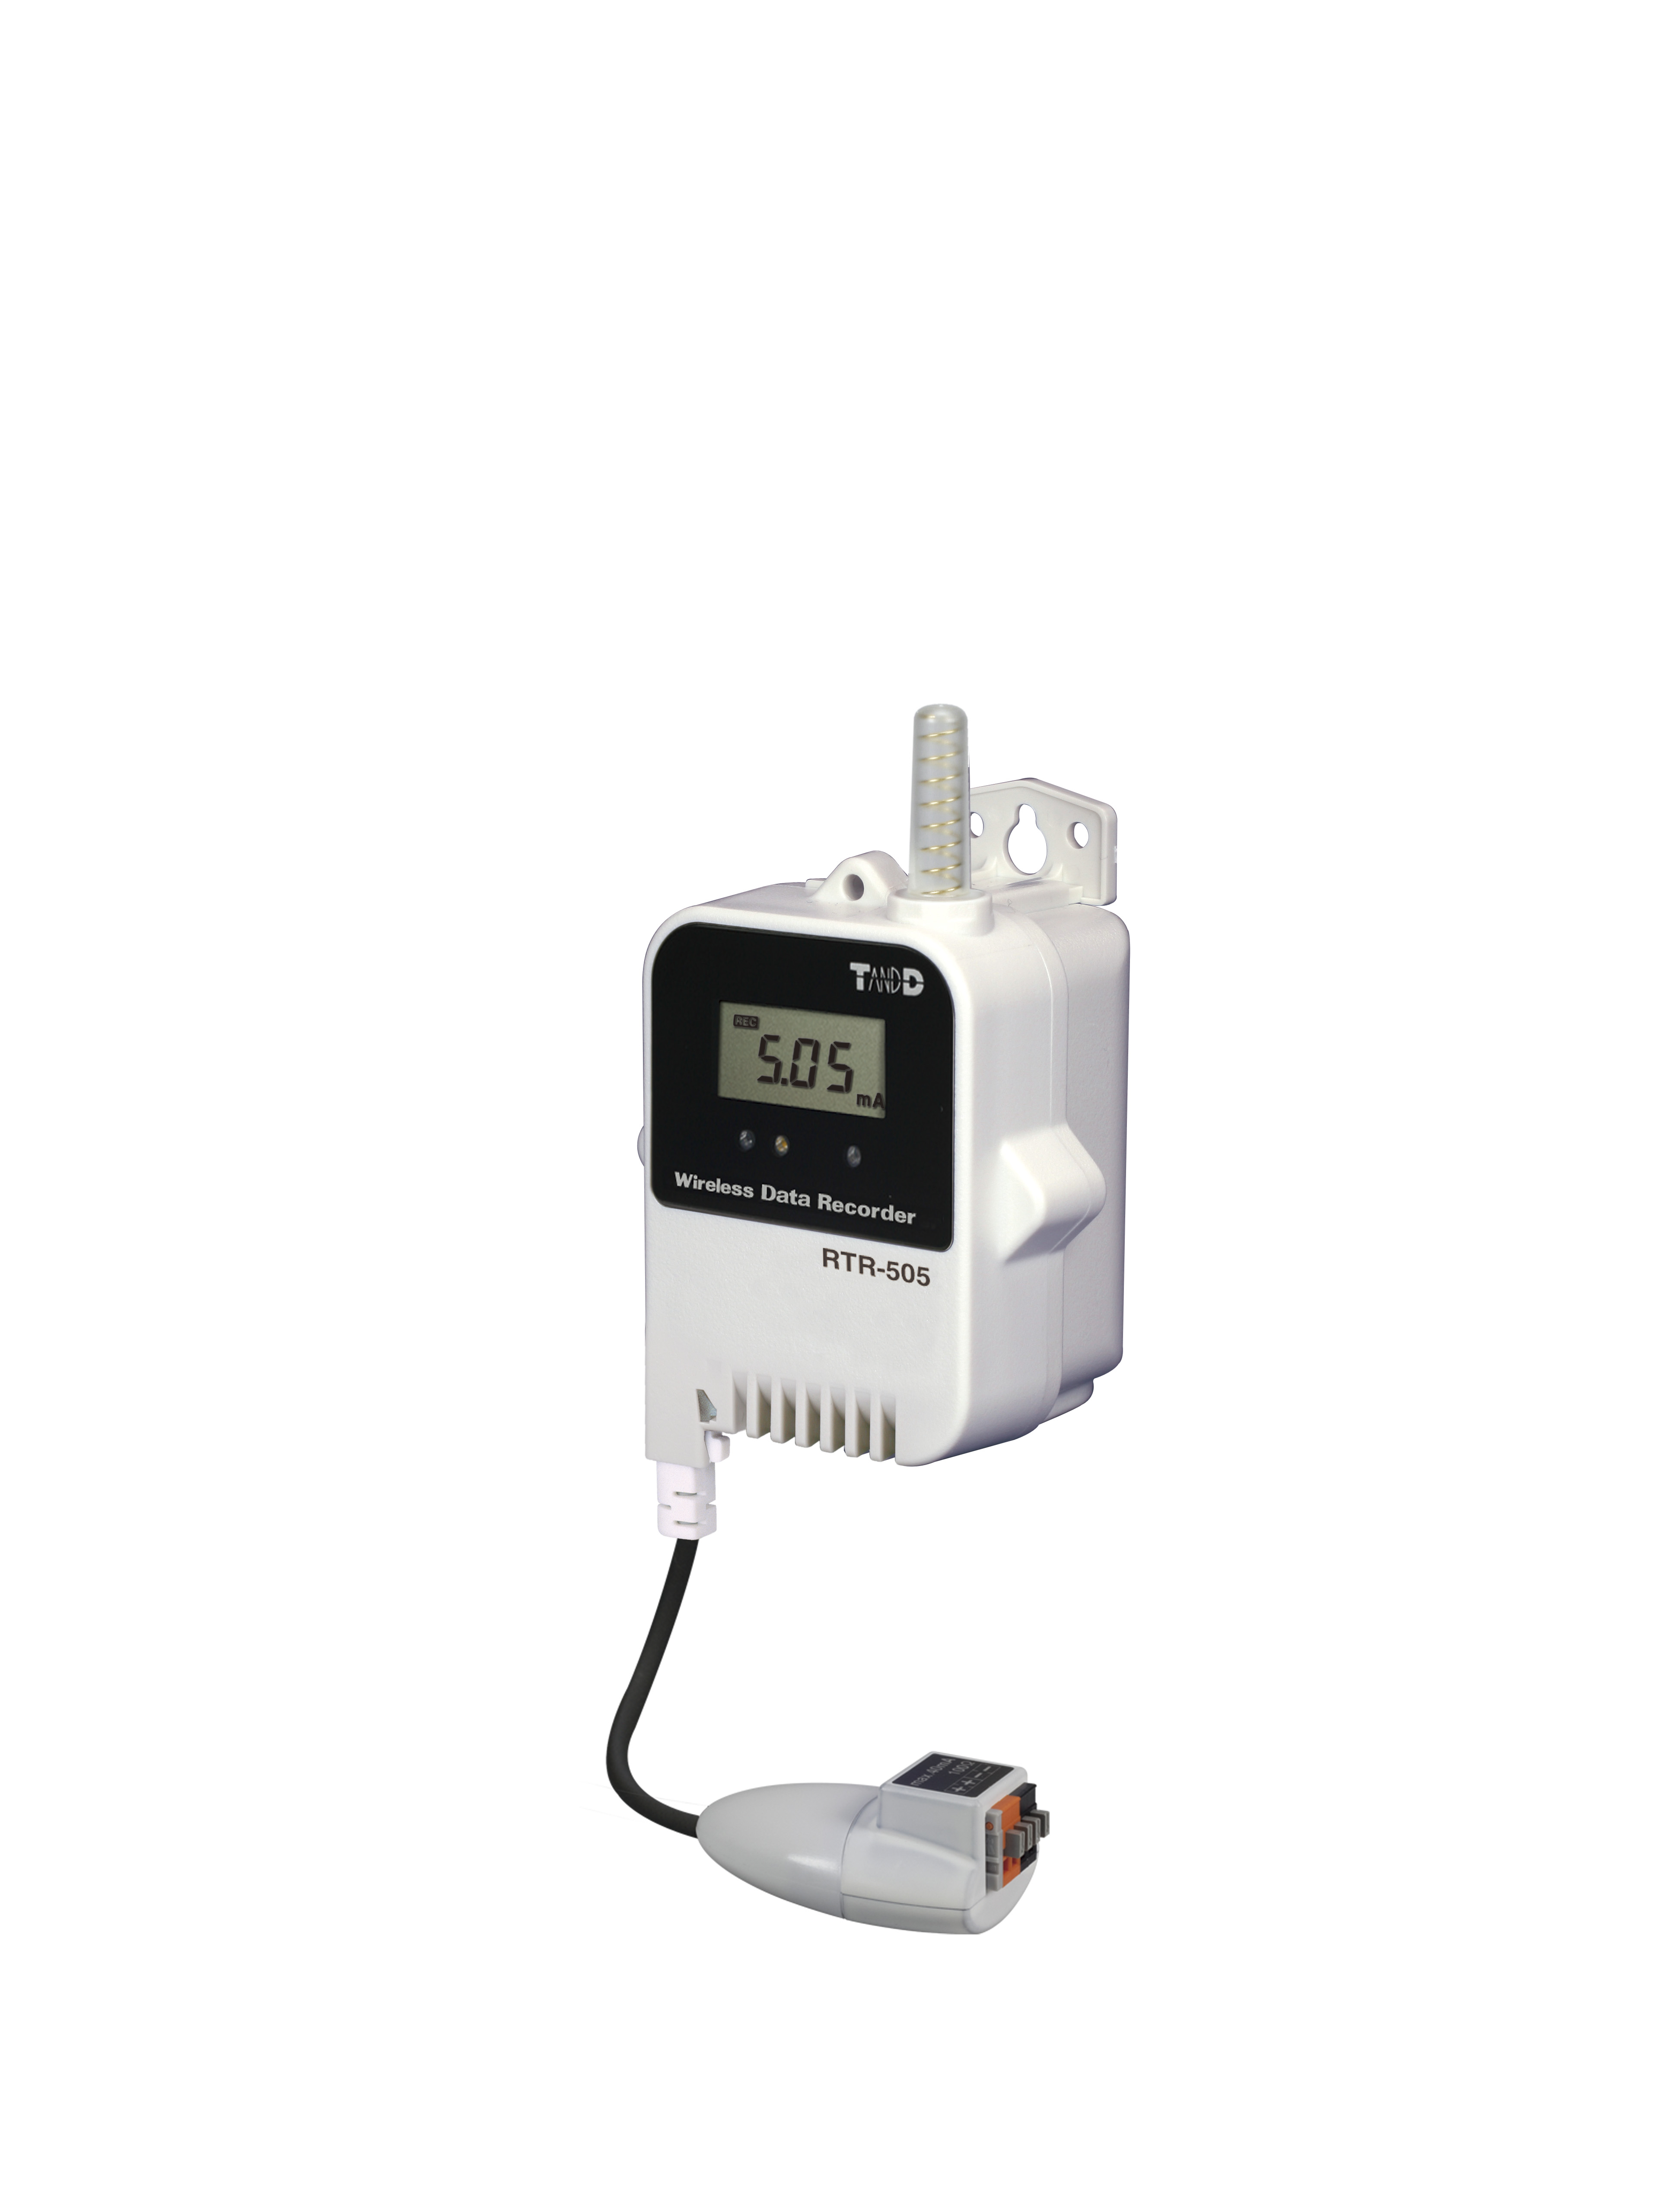 TADREC036: RTR-505-mAL 4-20mA Data Logger for Current with Long Life Battery